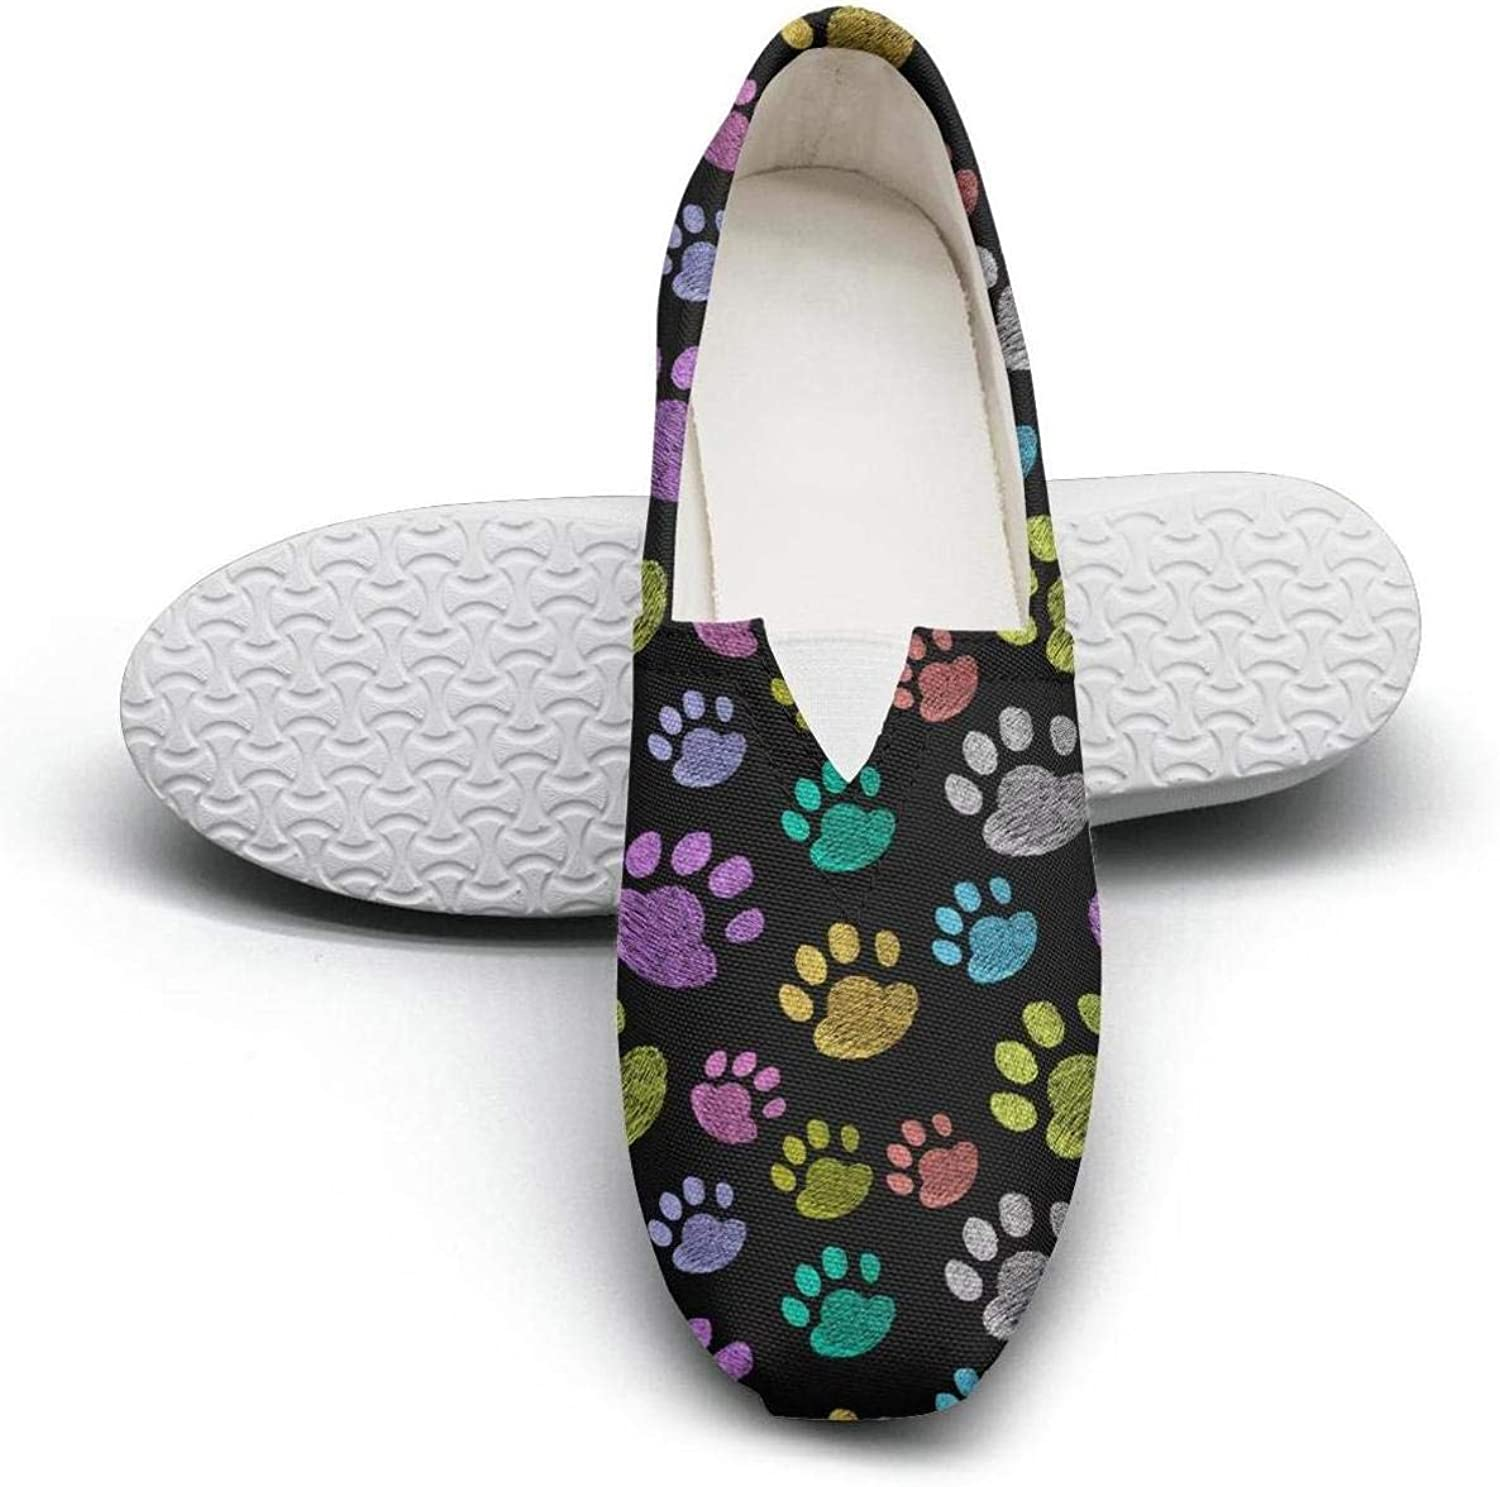 Puppies dog pattern with pet cute dogs Fairytale Princess Women's Extra Light Flat Walking Sneakers Ladies Loafer shoes